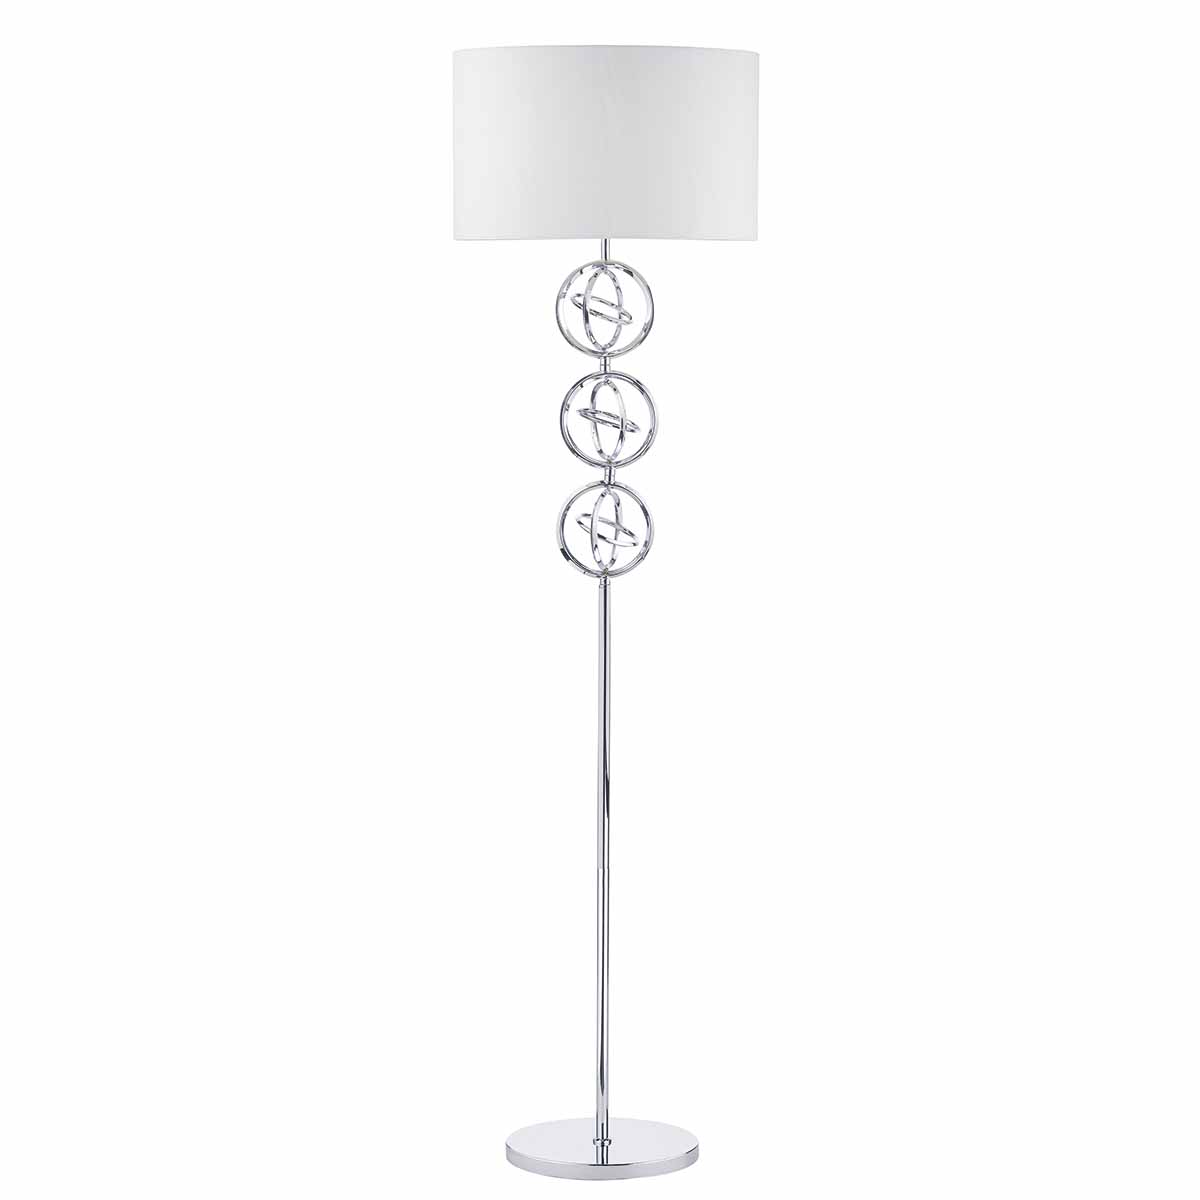 Chrome Donovan floor lamp, with shade